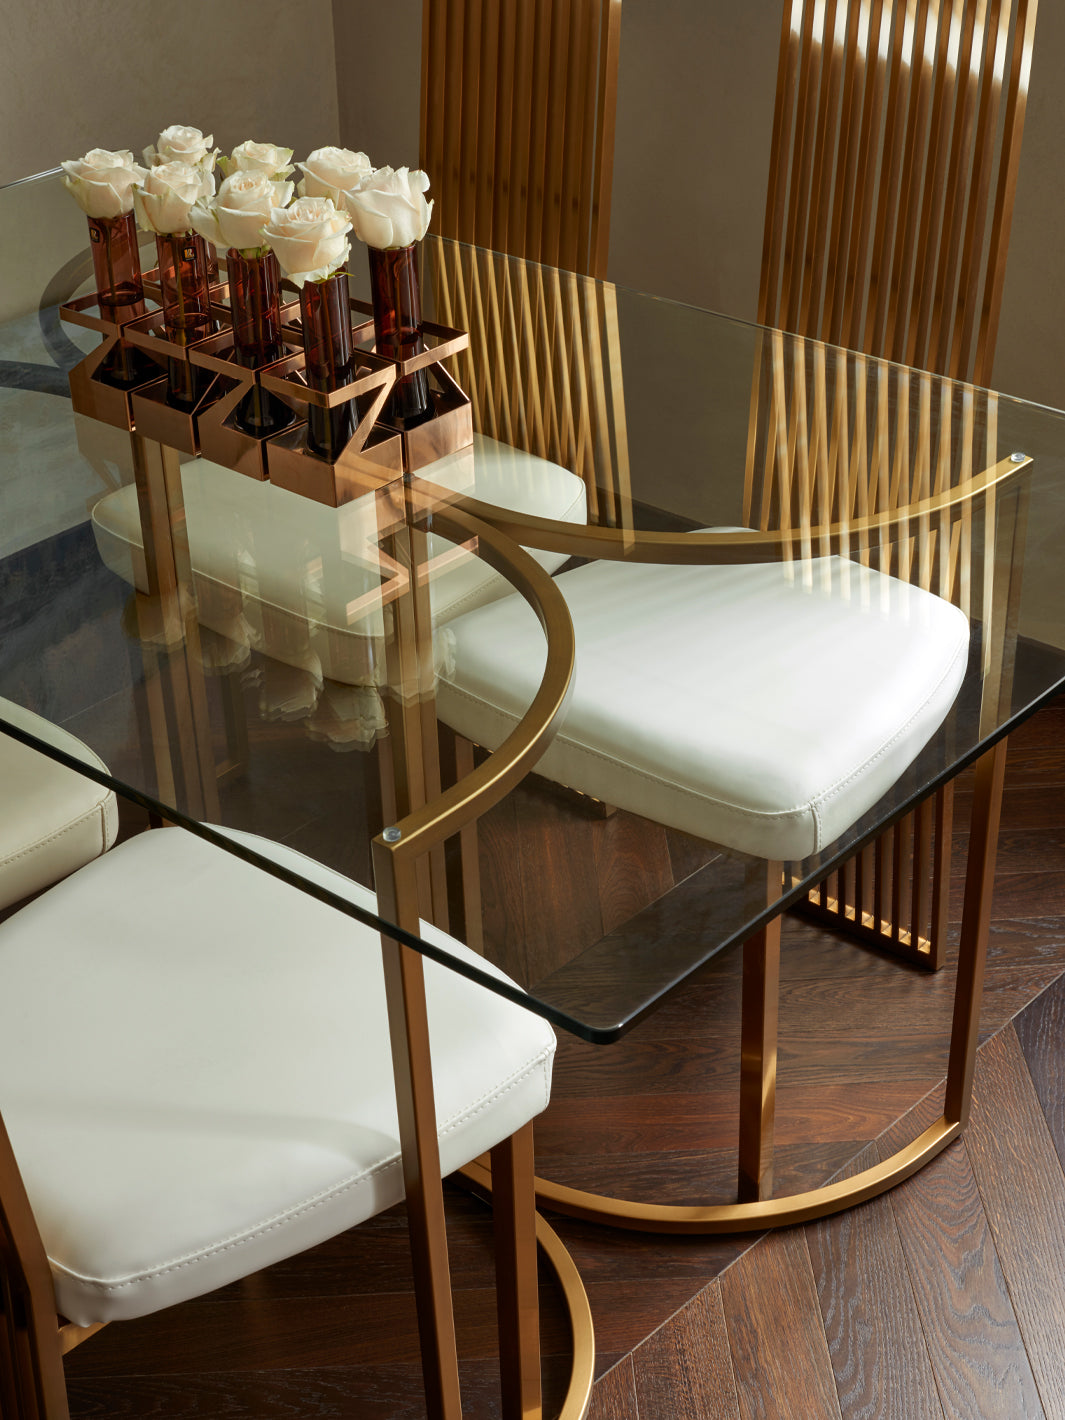 Residential Interior Design | Dining Room Dècor | Brass Dining Table & Brass Dining Chairs | Covent Garden Apartment | 5mm Design London